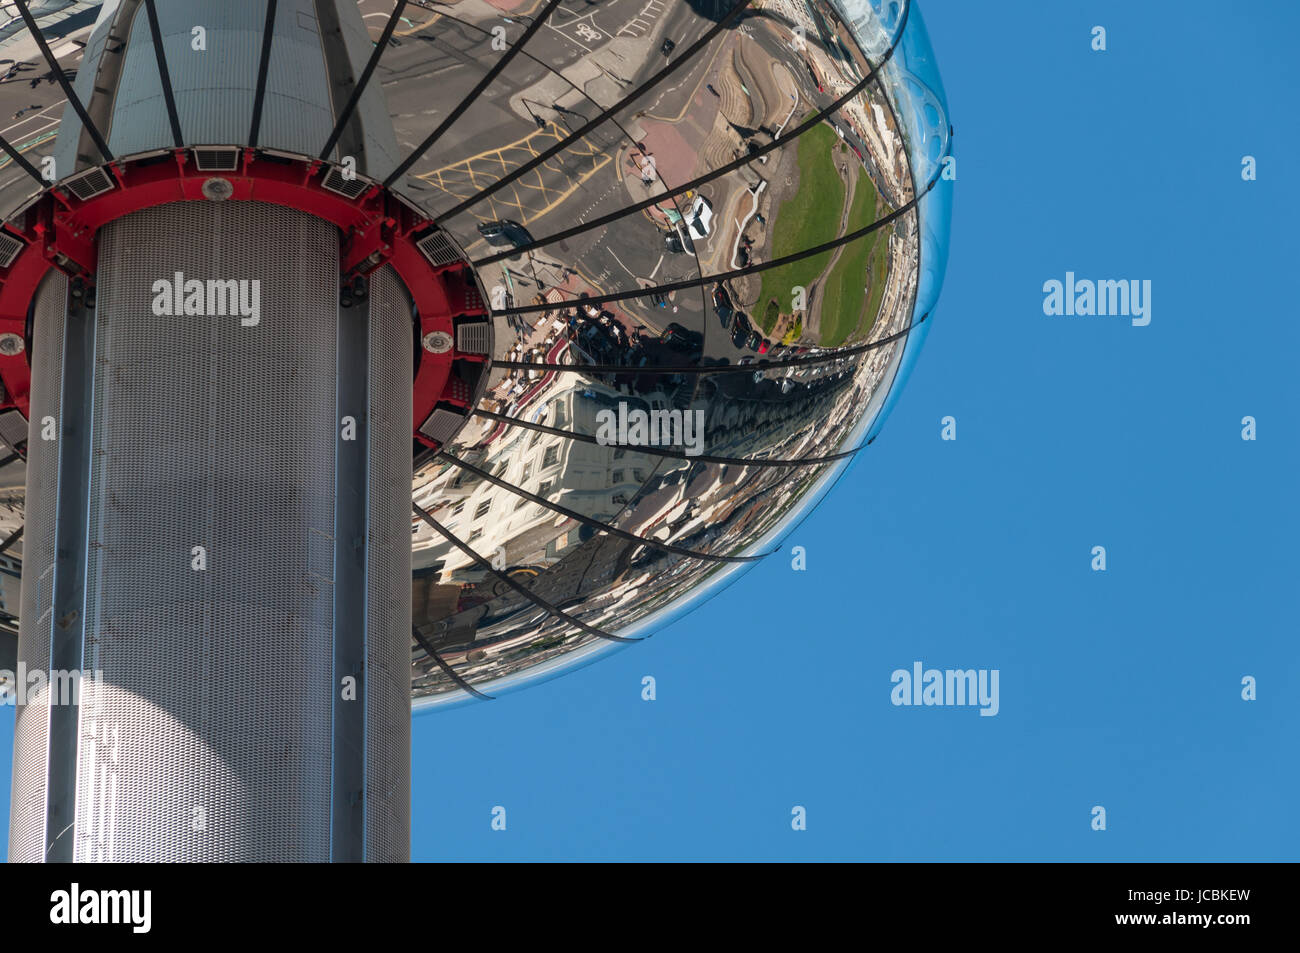 British Airways i360 attraction, Brighton, United Kingdom - Stock Image